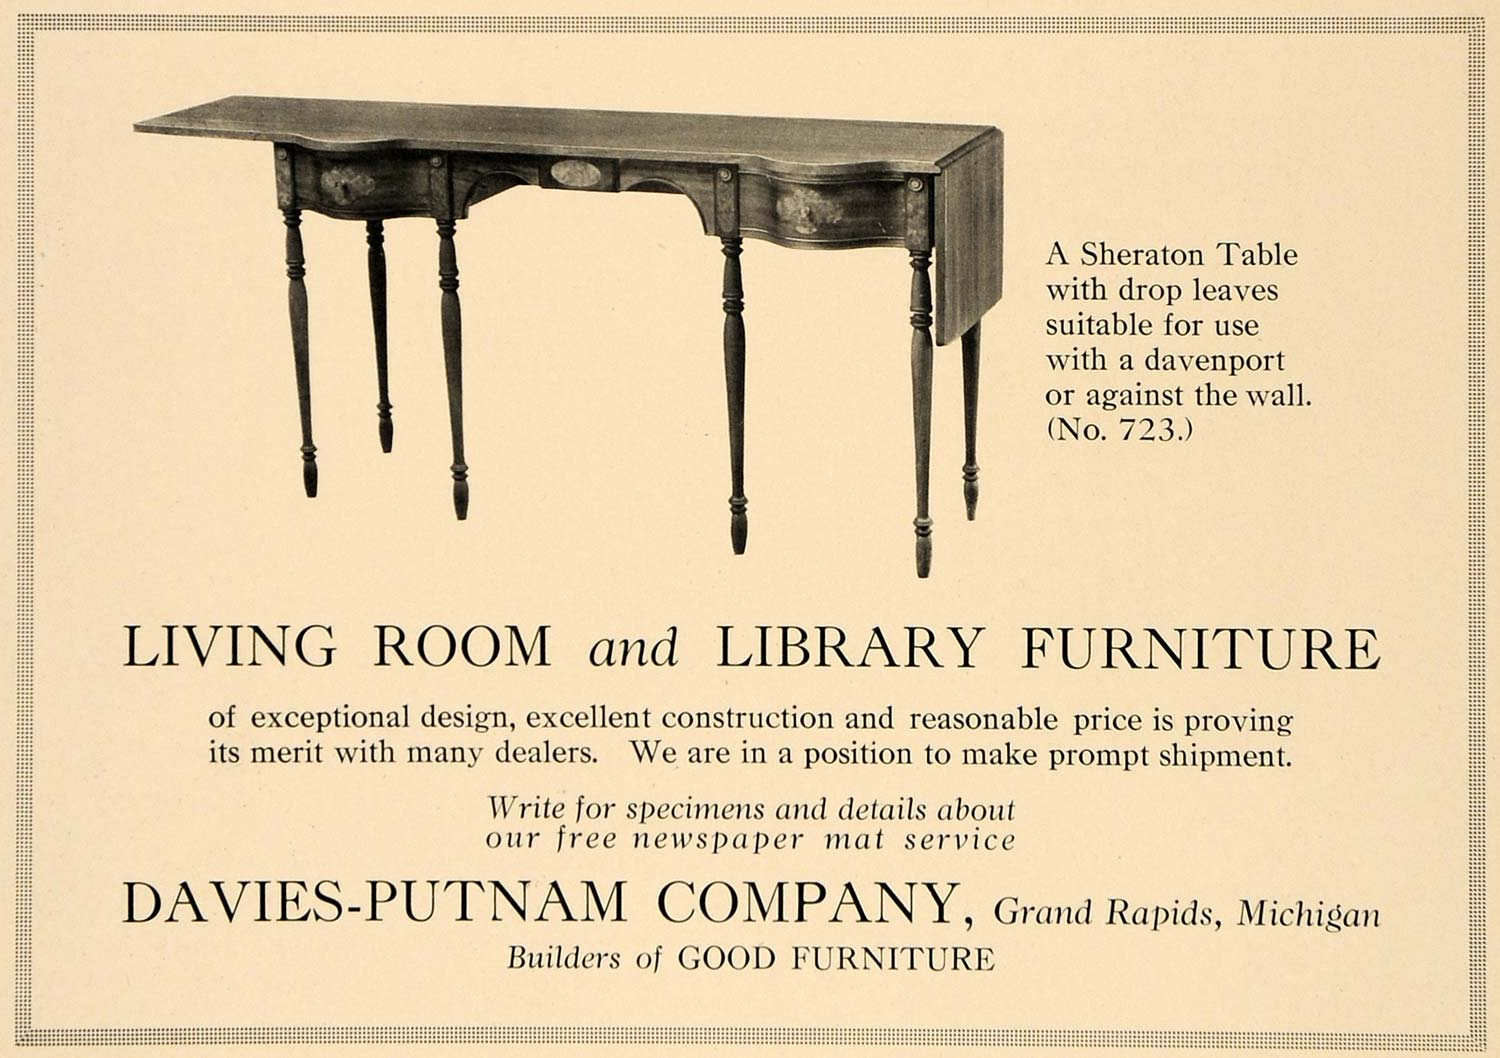 1918 Ad Davies-Putnam Co. Furniture Sheraton Table 723 - ORIGINAL GF2